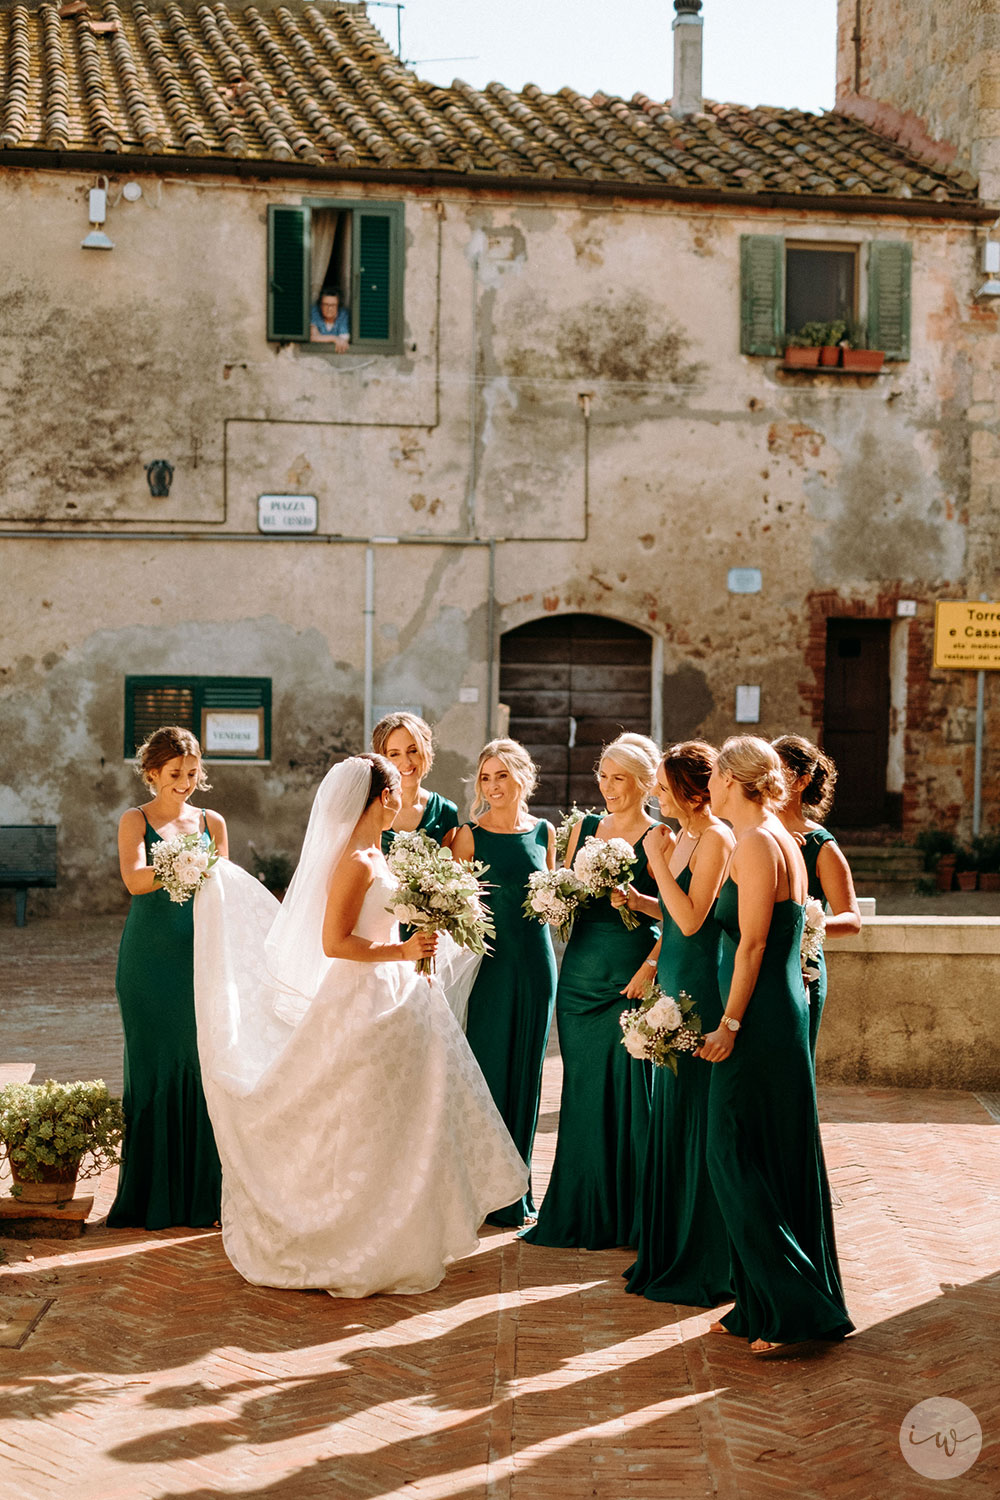 Intimate Catholic wedding villa near the Tuscany coast